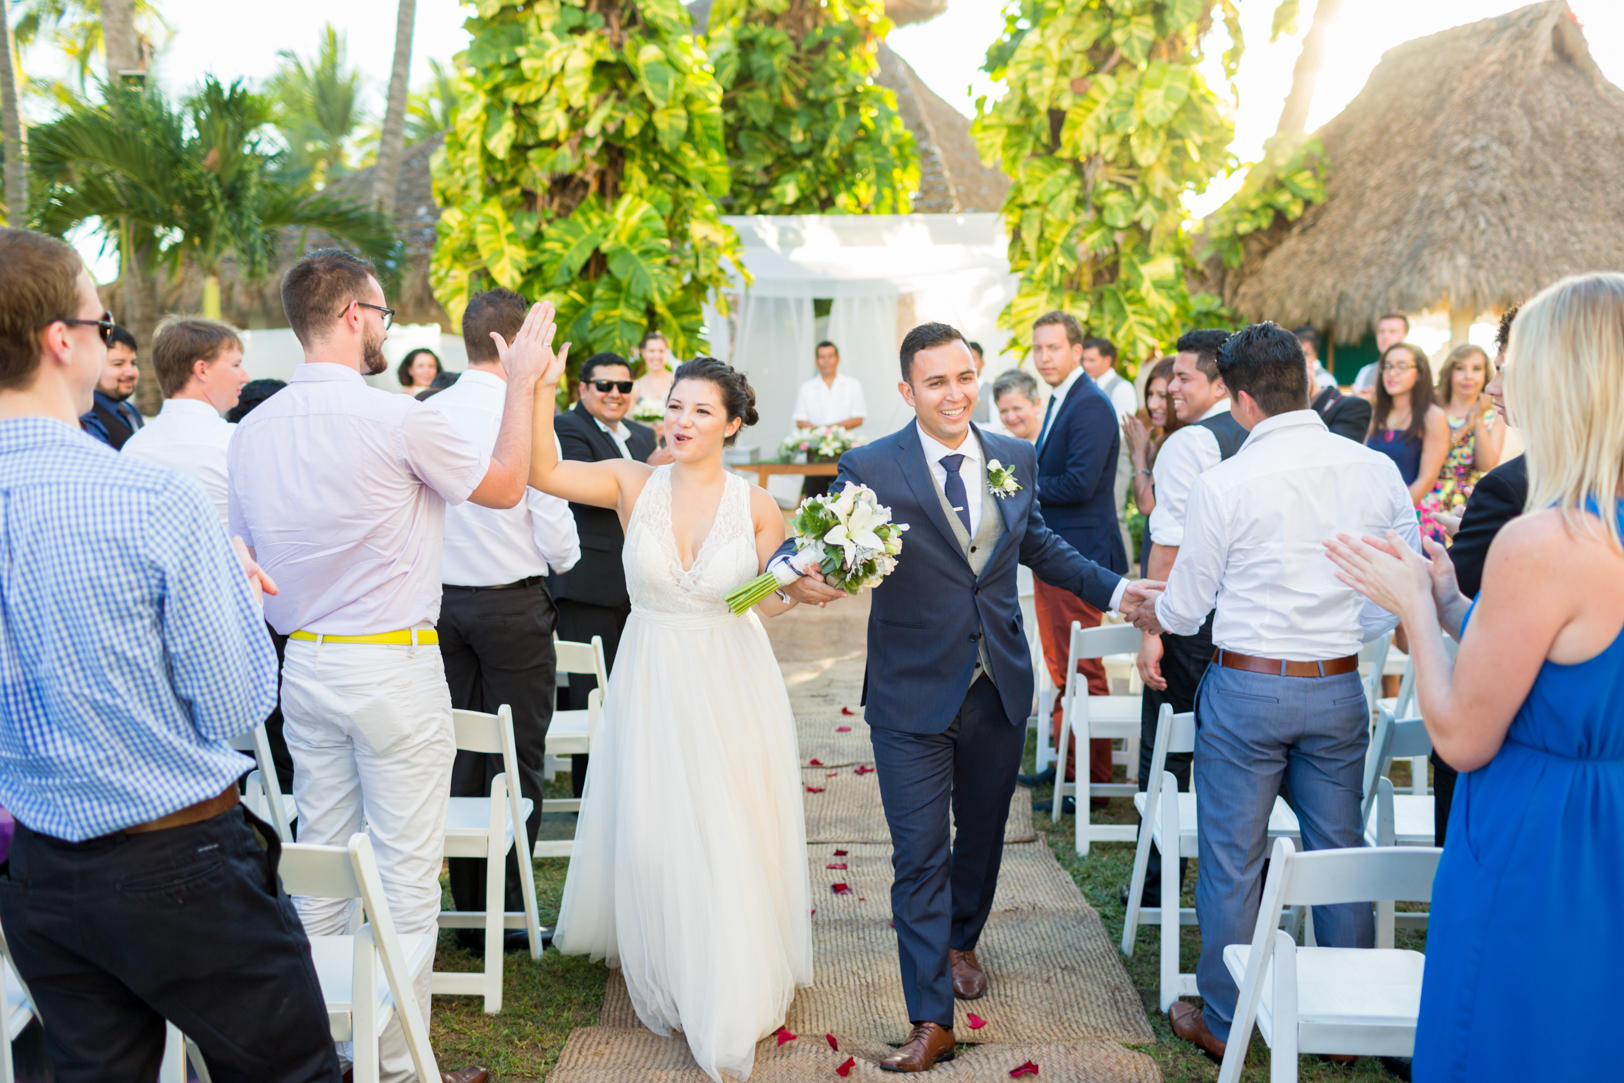 Bride and groom recessional after the wedding